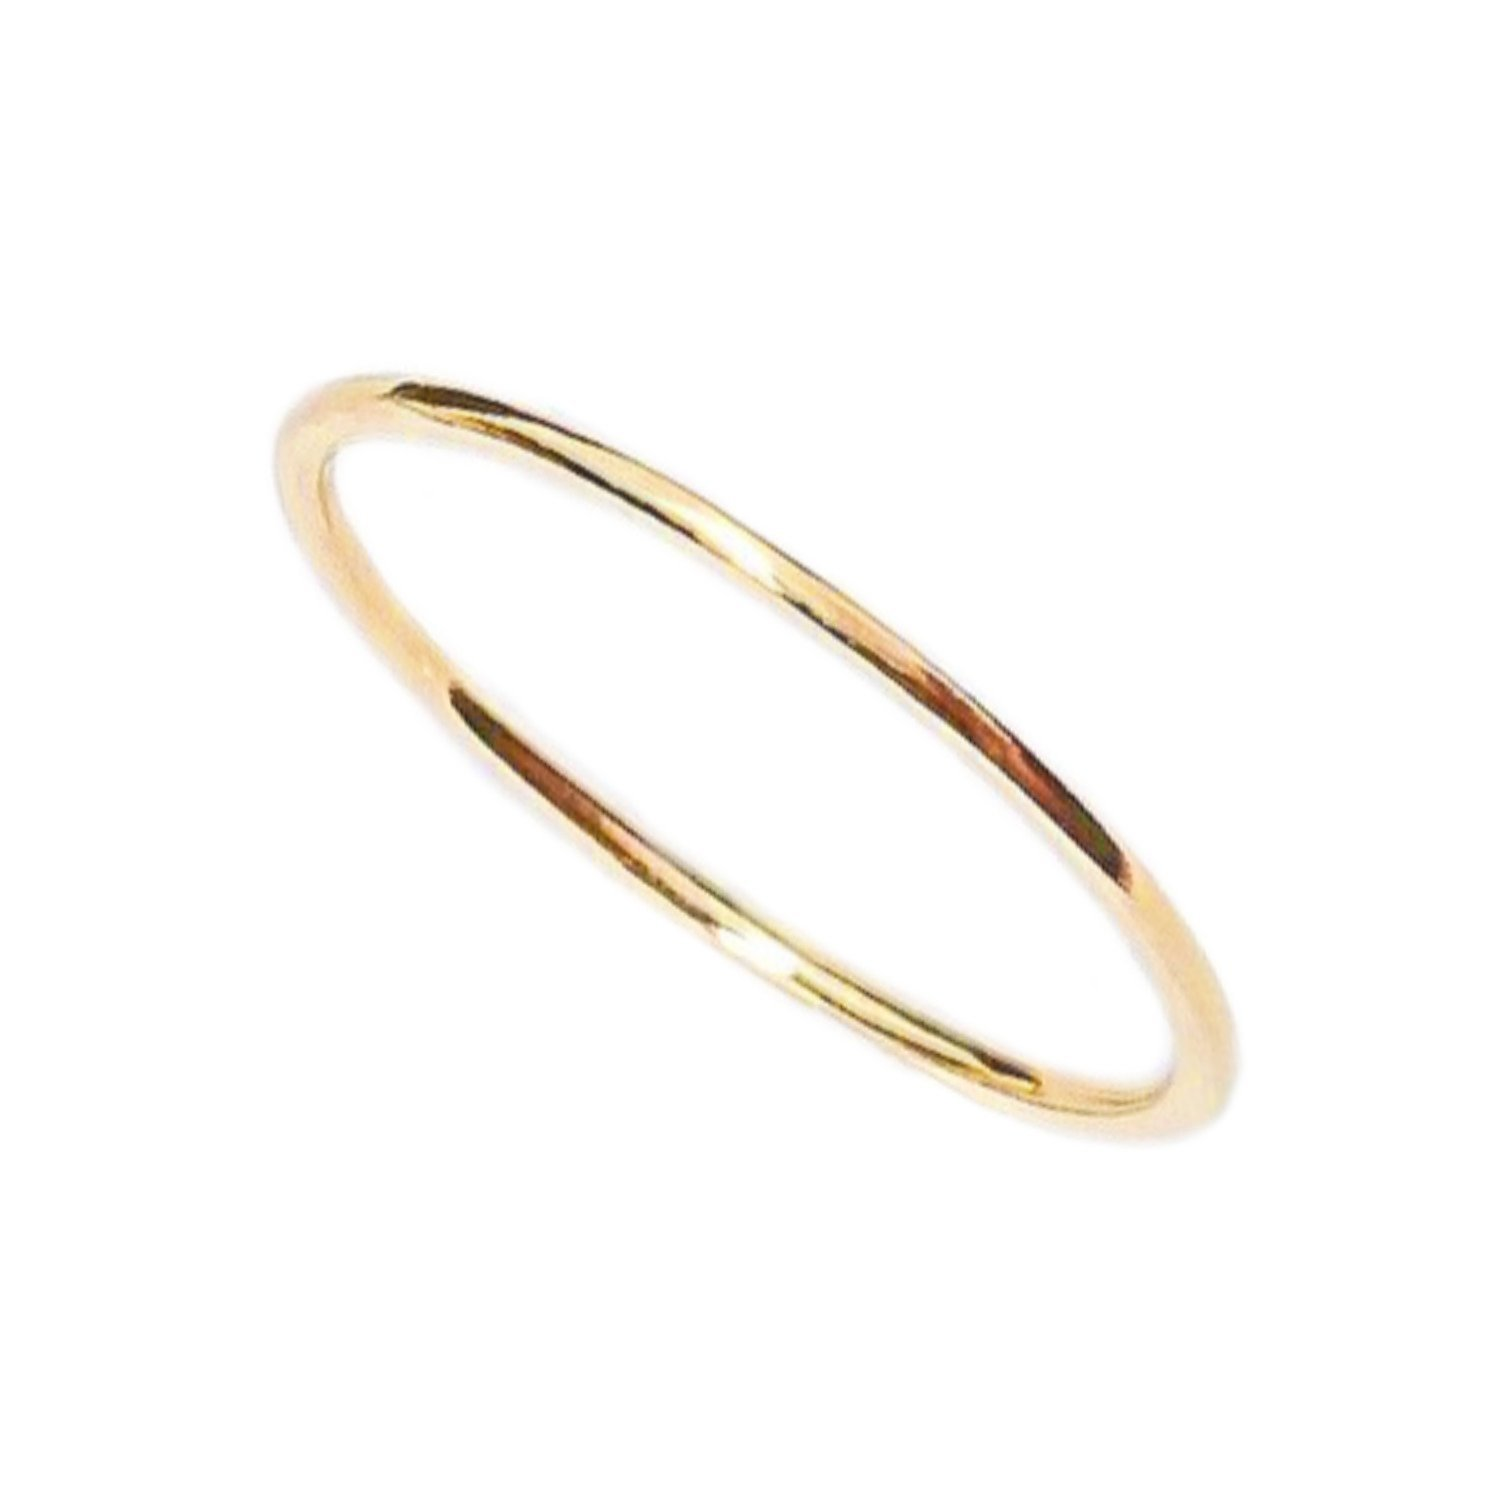 Amazon Very Thin 08mm Solid Yellow Gold Ring 18k Gift For Precious One And Your Self Handmade: Very Thin Gold Wedding Band At Websimilar.org